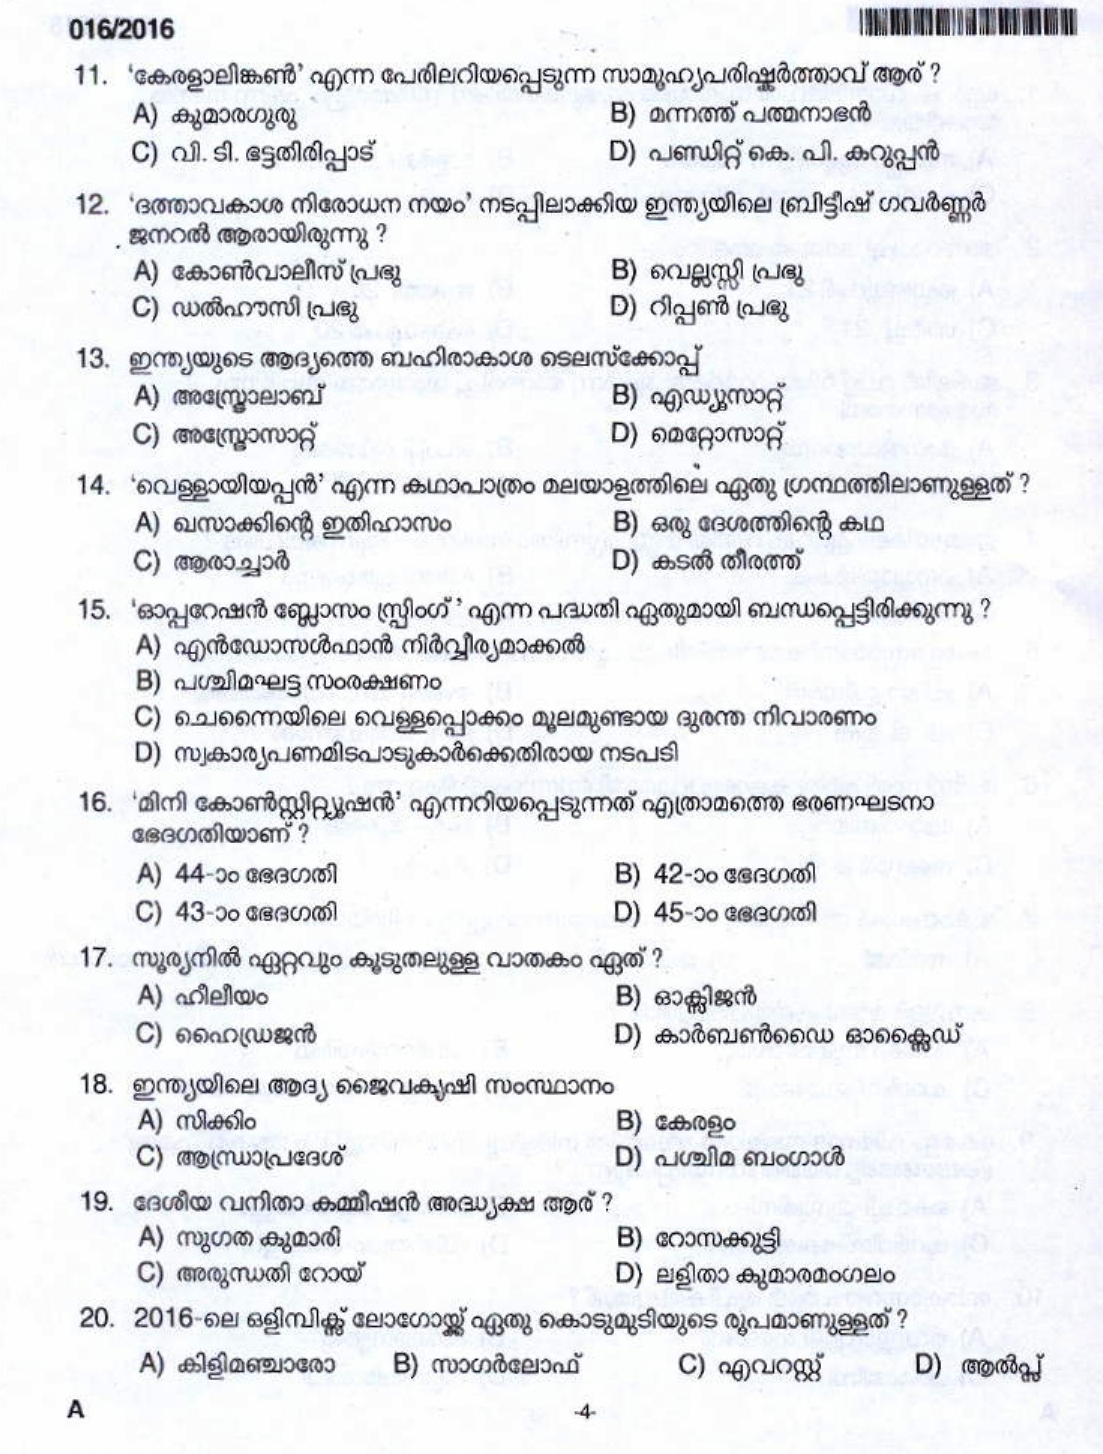 Teacher (16/2016) Question Paper with Answer Key - Kerala PSC